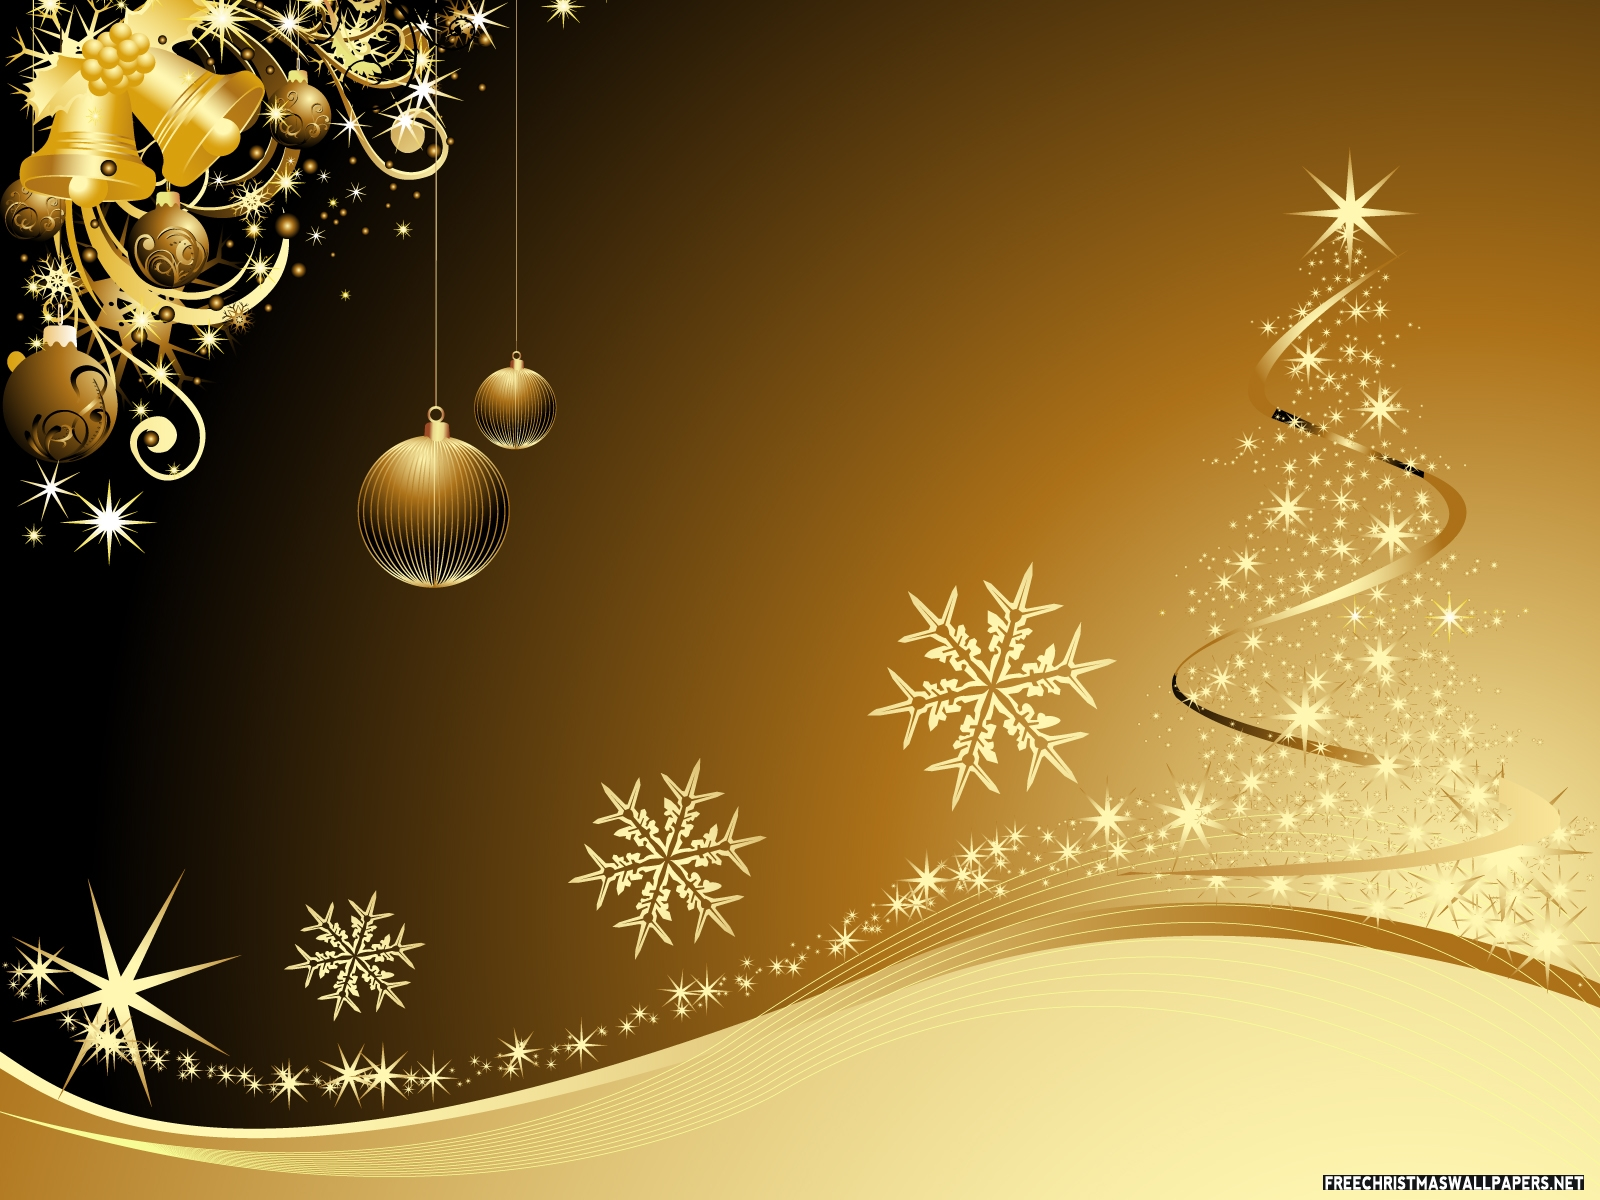 1000+ ideas about Christmas Wallpaper Free on Pinterest